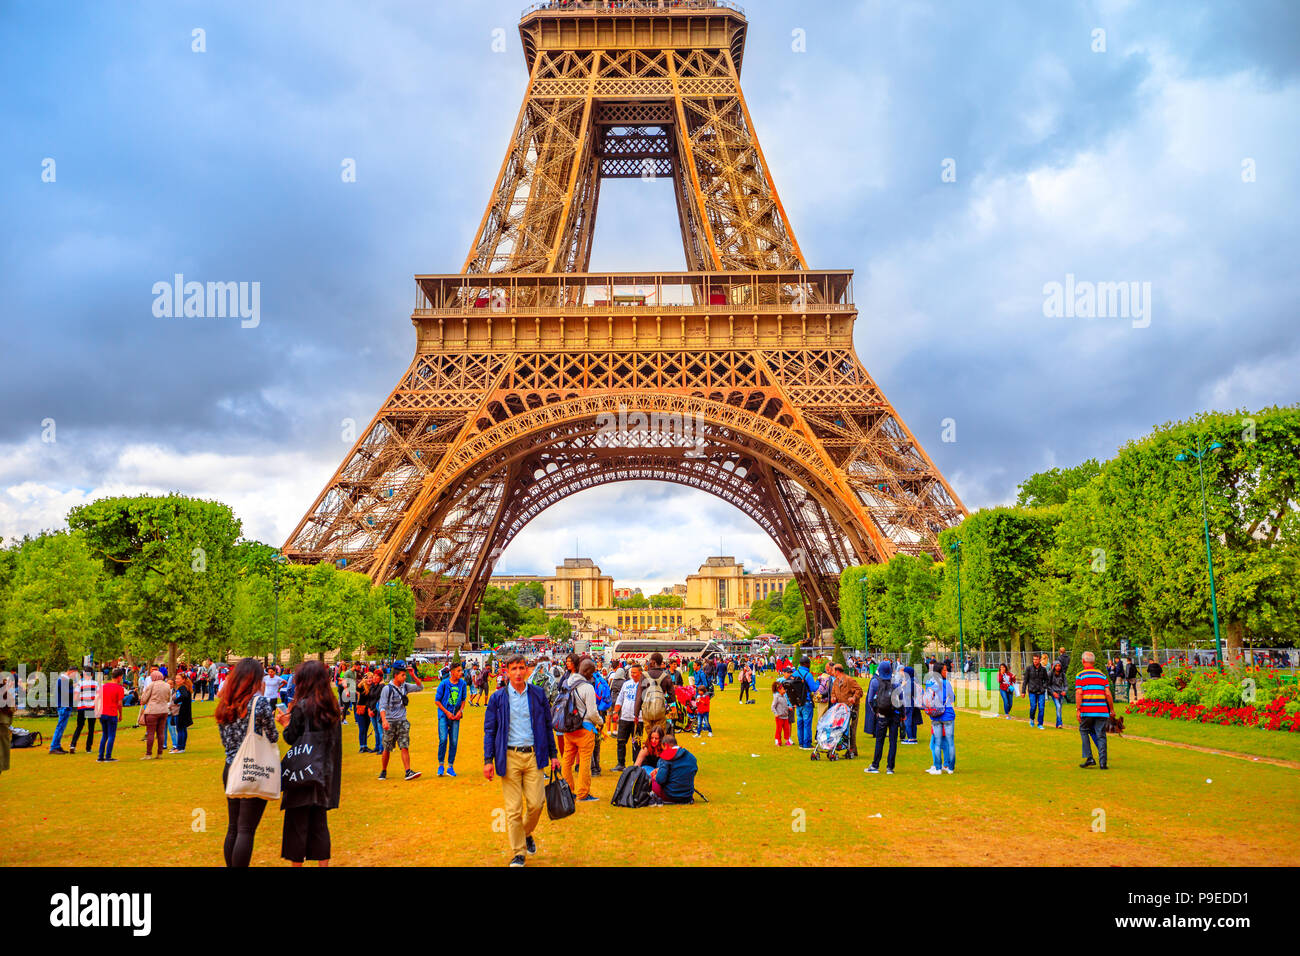 Paris, France - July 1, 2017: many people on Champ de Mars looking the Tour Eiffel, icon and symbol of Paris. Cloudy sky in a summer day. Europe travel concept. - Stock Image